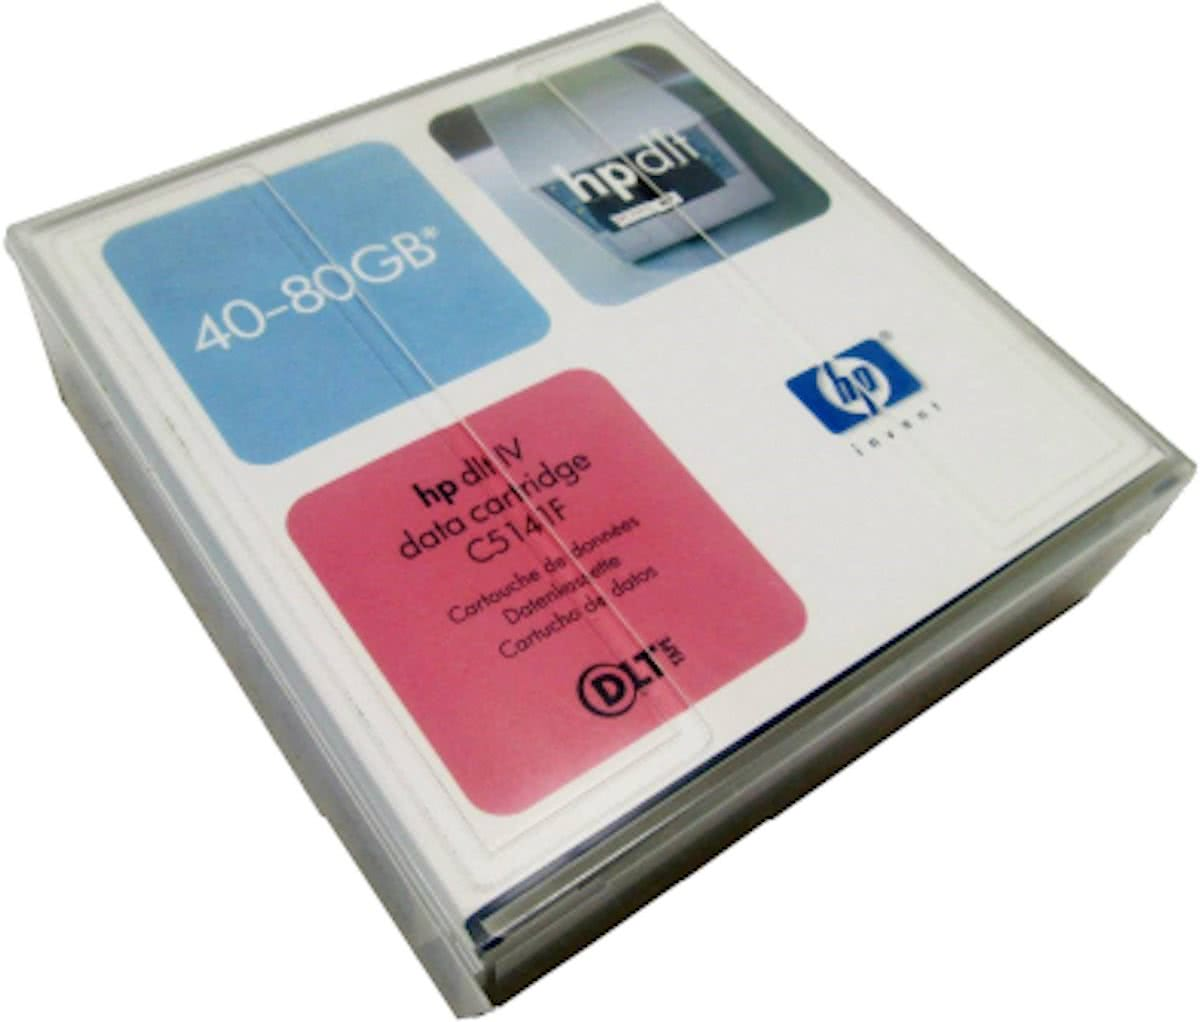 Cartucho HP DLT 4 40/80Gb.